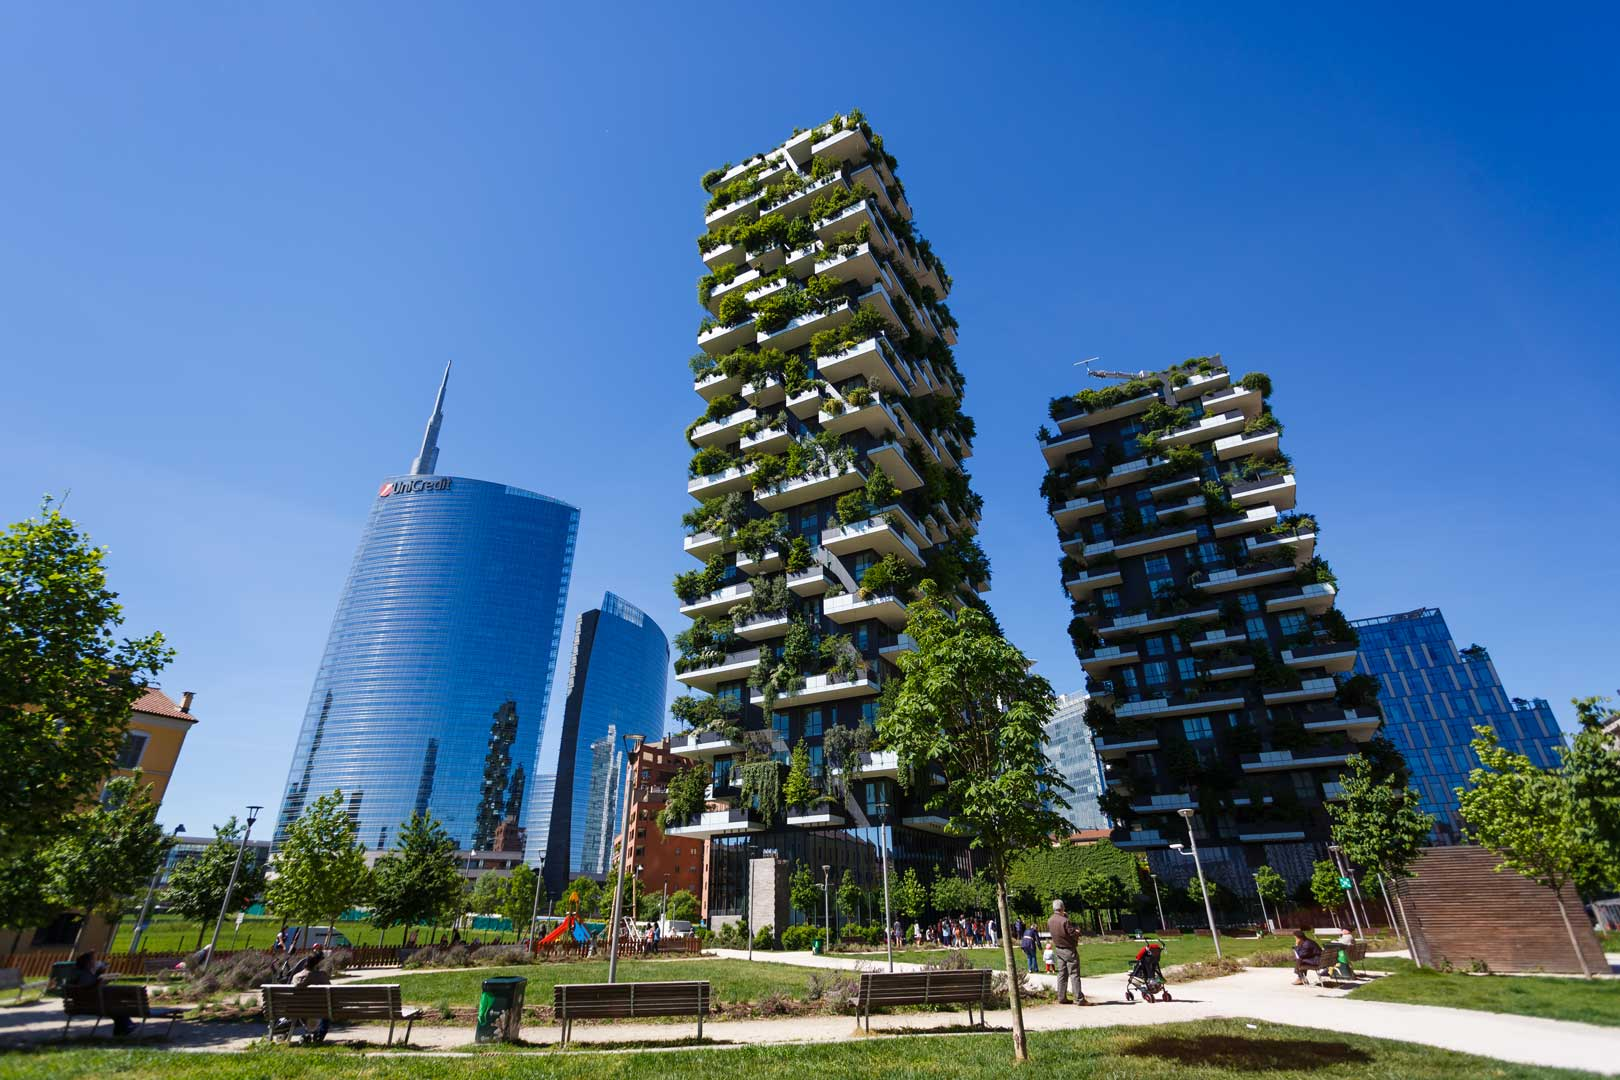 One night at Bosco Verticale